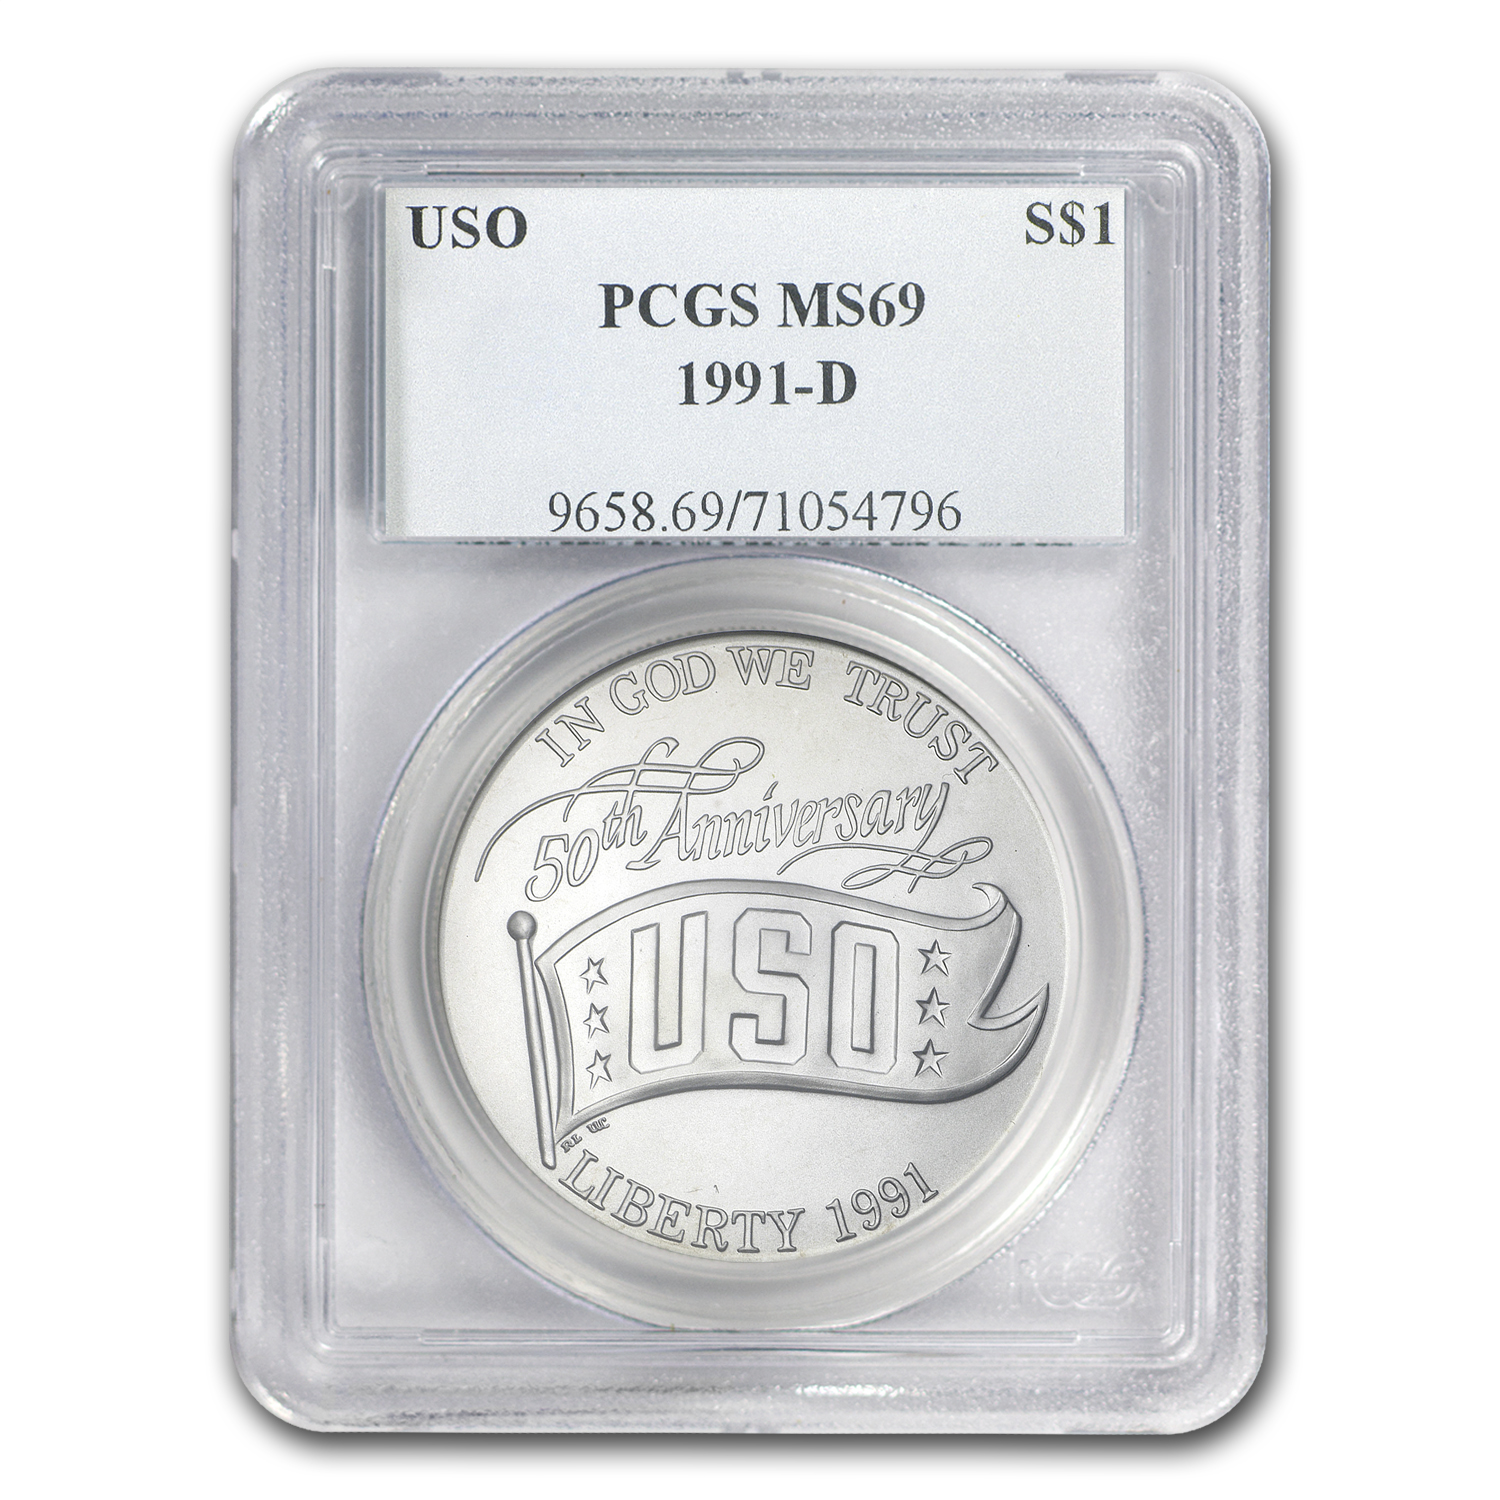 1991-D USO $1 Silver Commemorative MS-69 PCGS